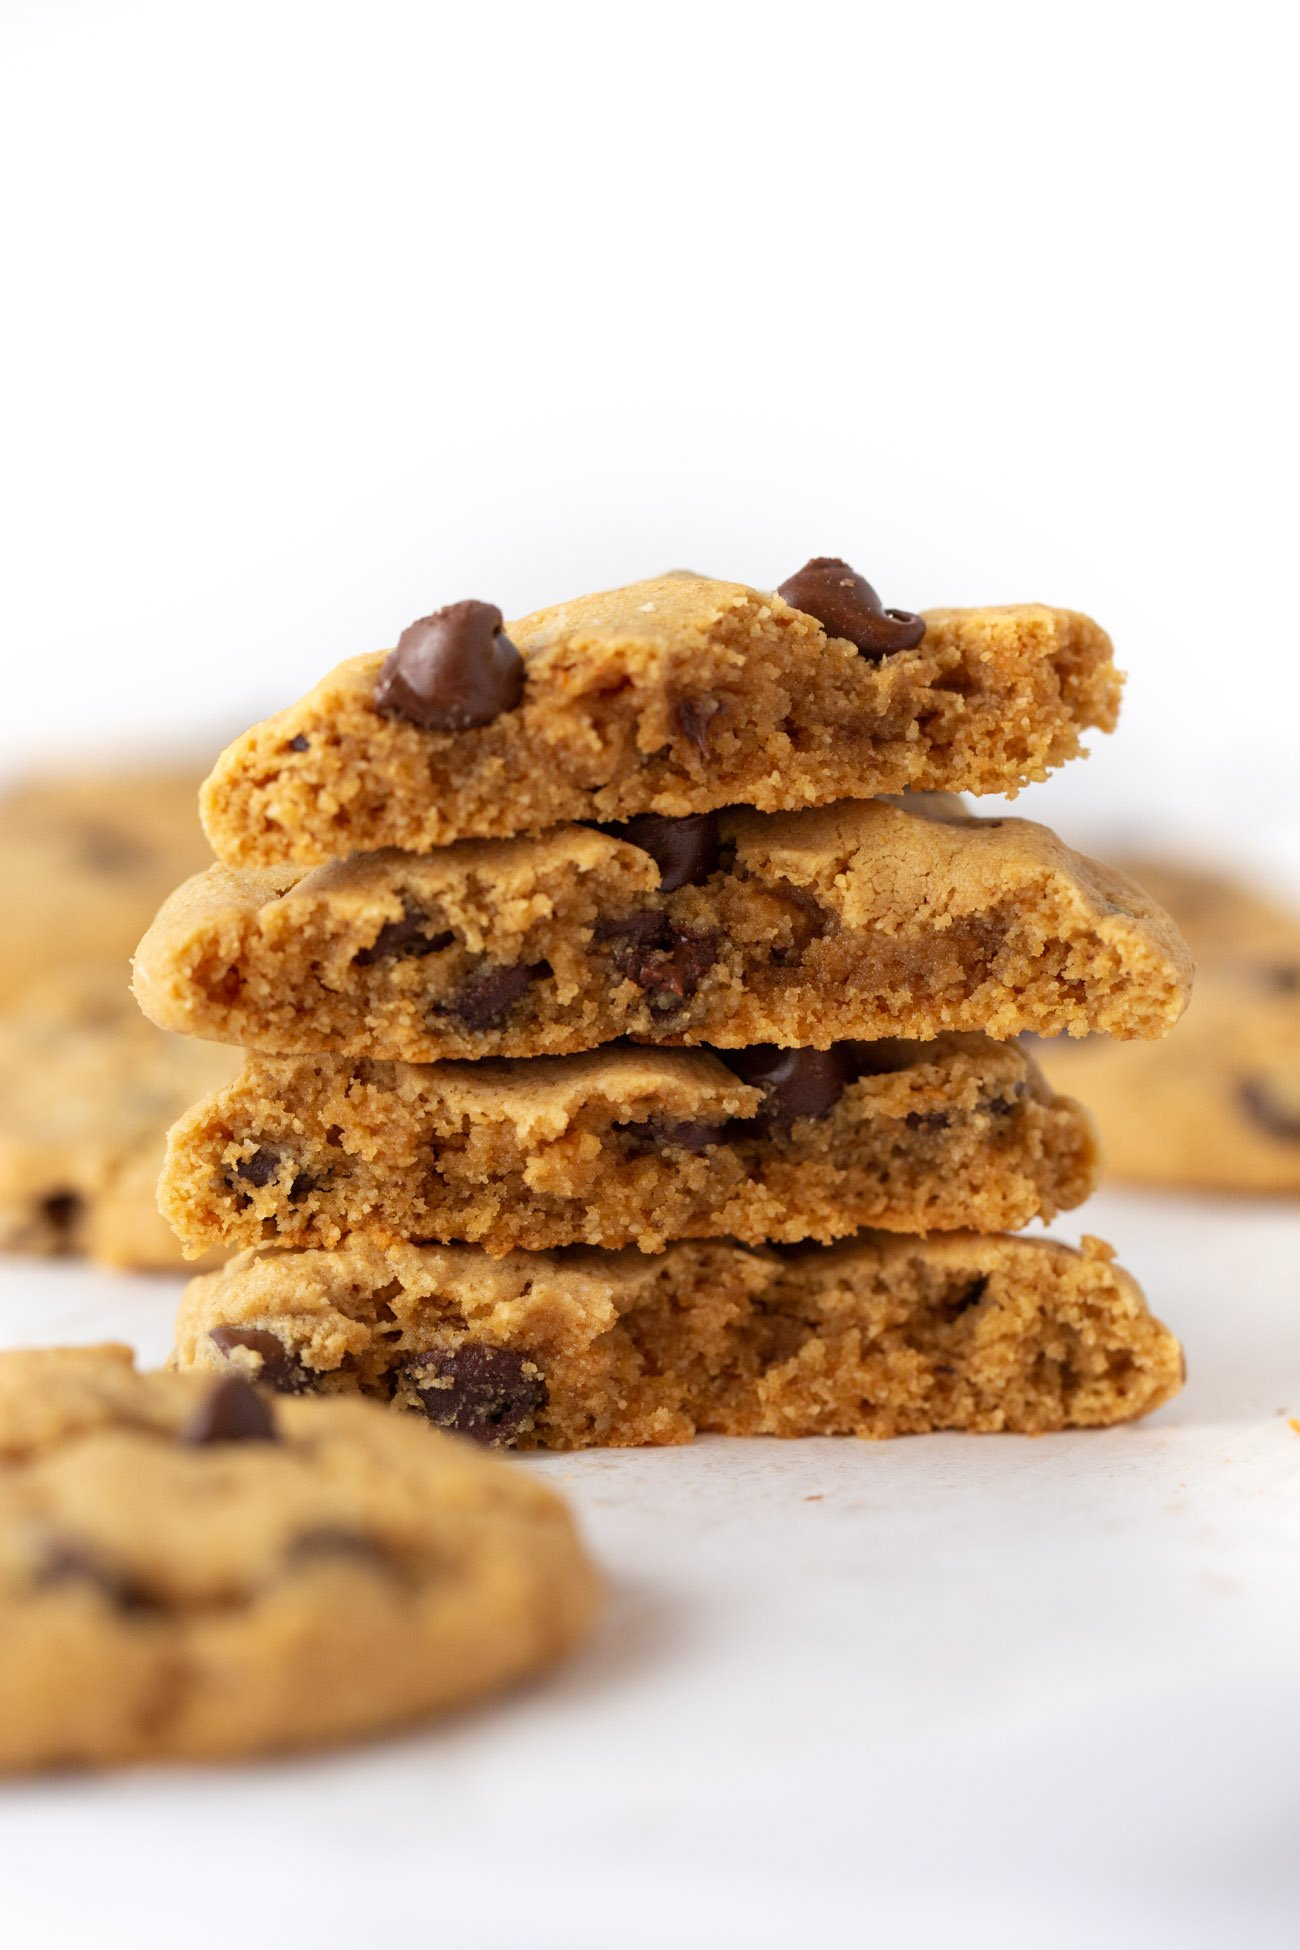 Stack of Chewy and Soft Gluten Free Peanut Butter Chocolate Chip Cookies